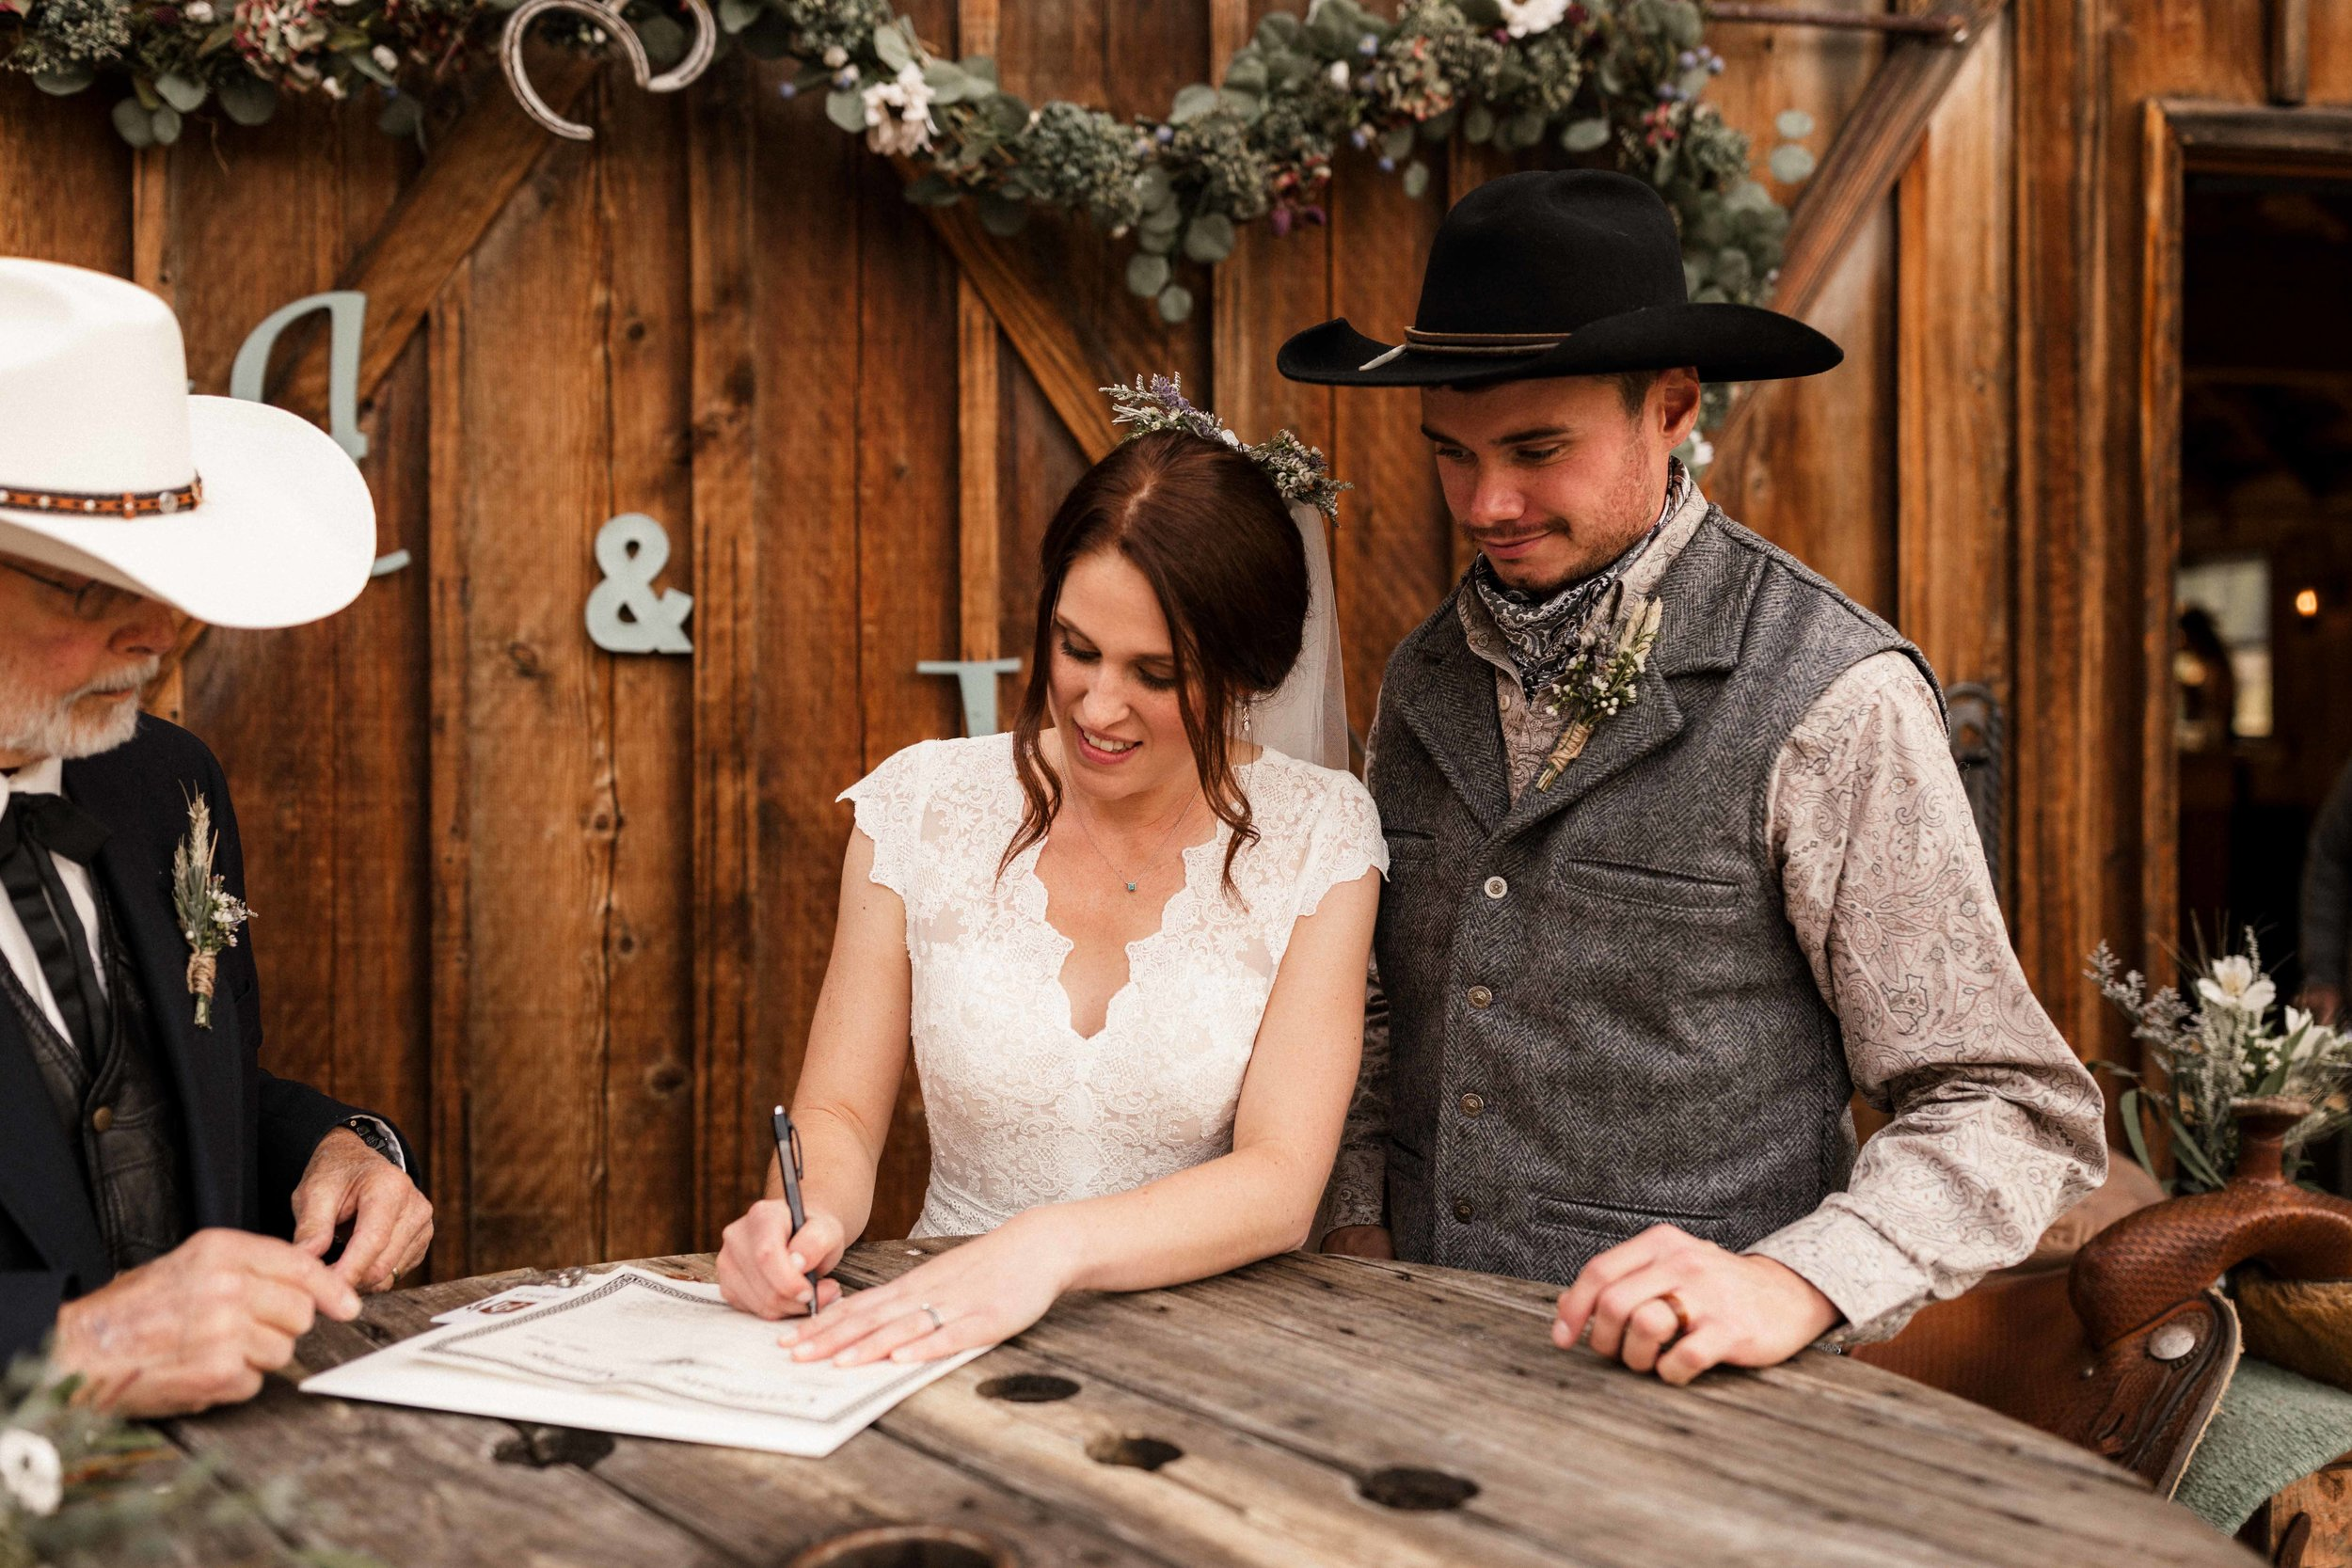 the-cattle-barn-wedding-52.jpg